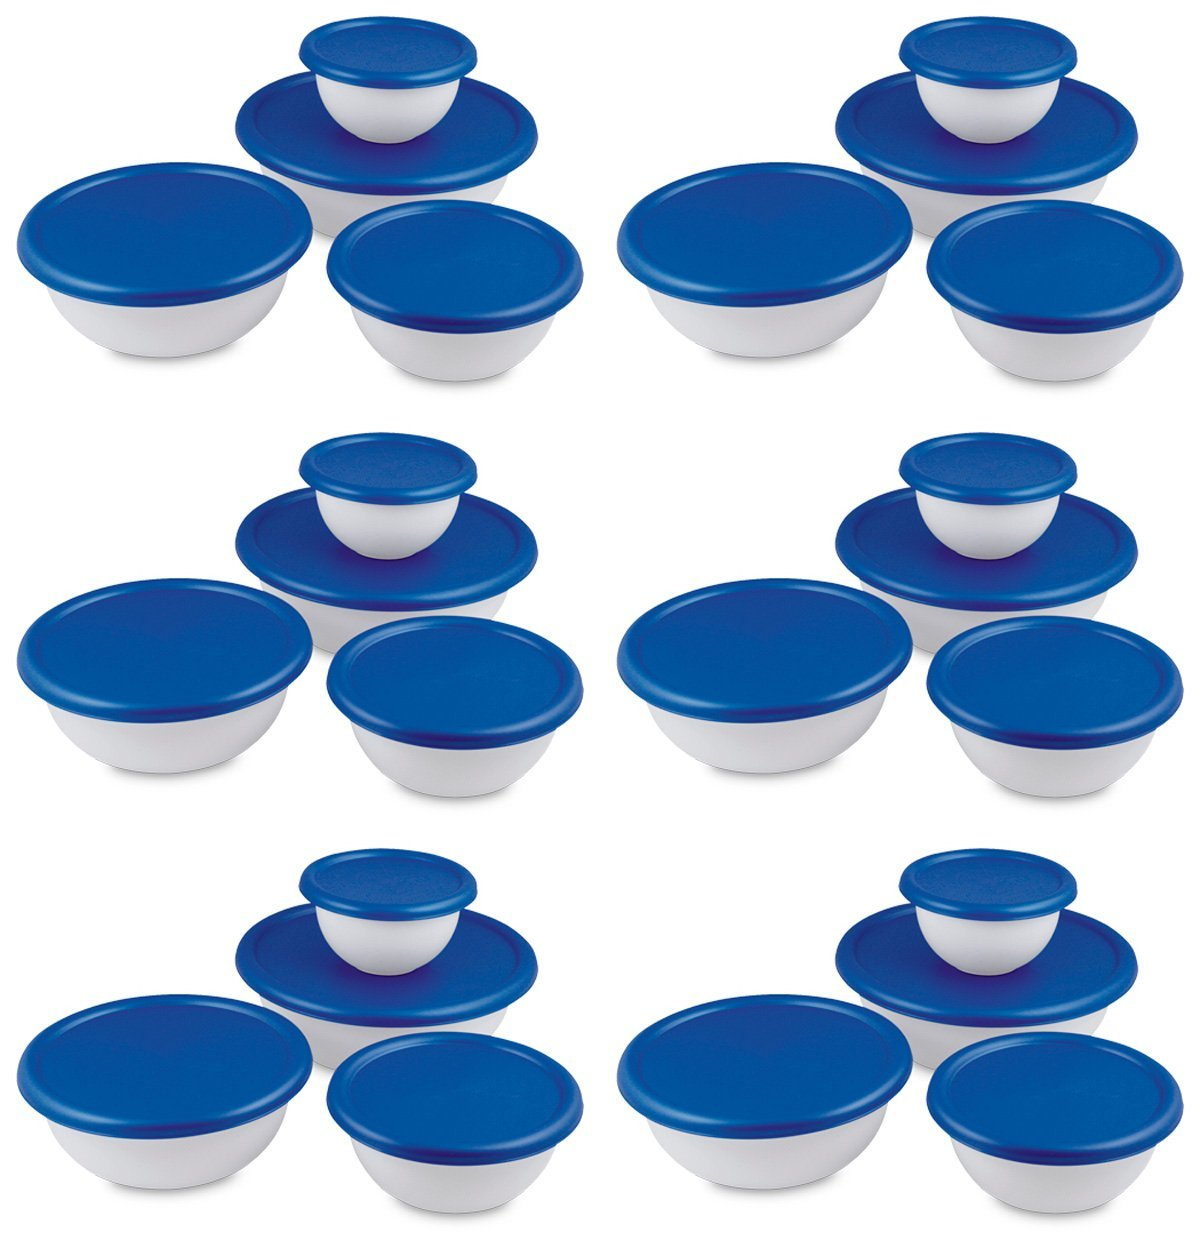 6 Pack 07479406 8-Piece Plastic Kitchen Covered Bowl/Mixi...